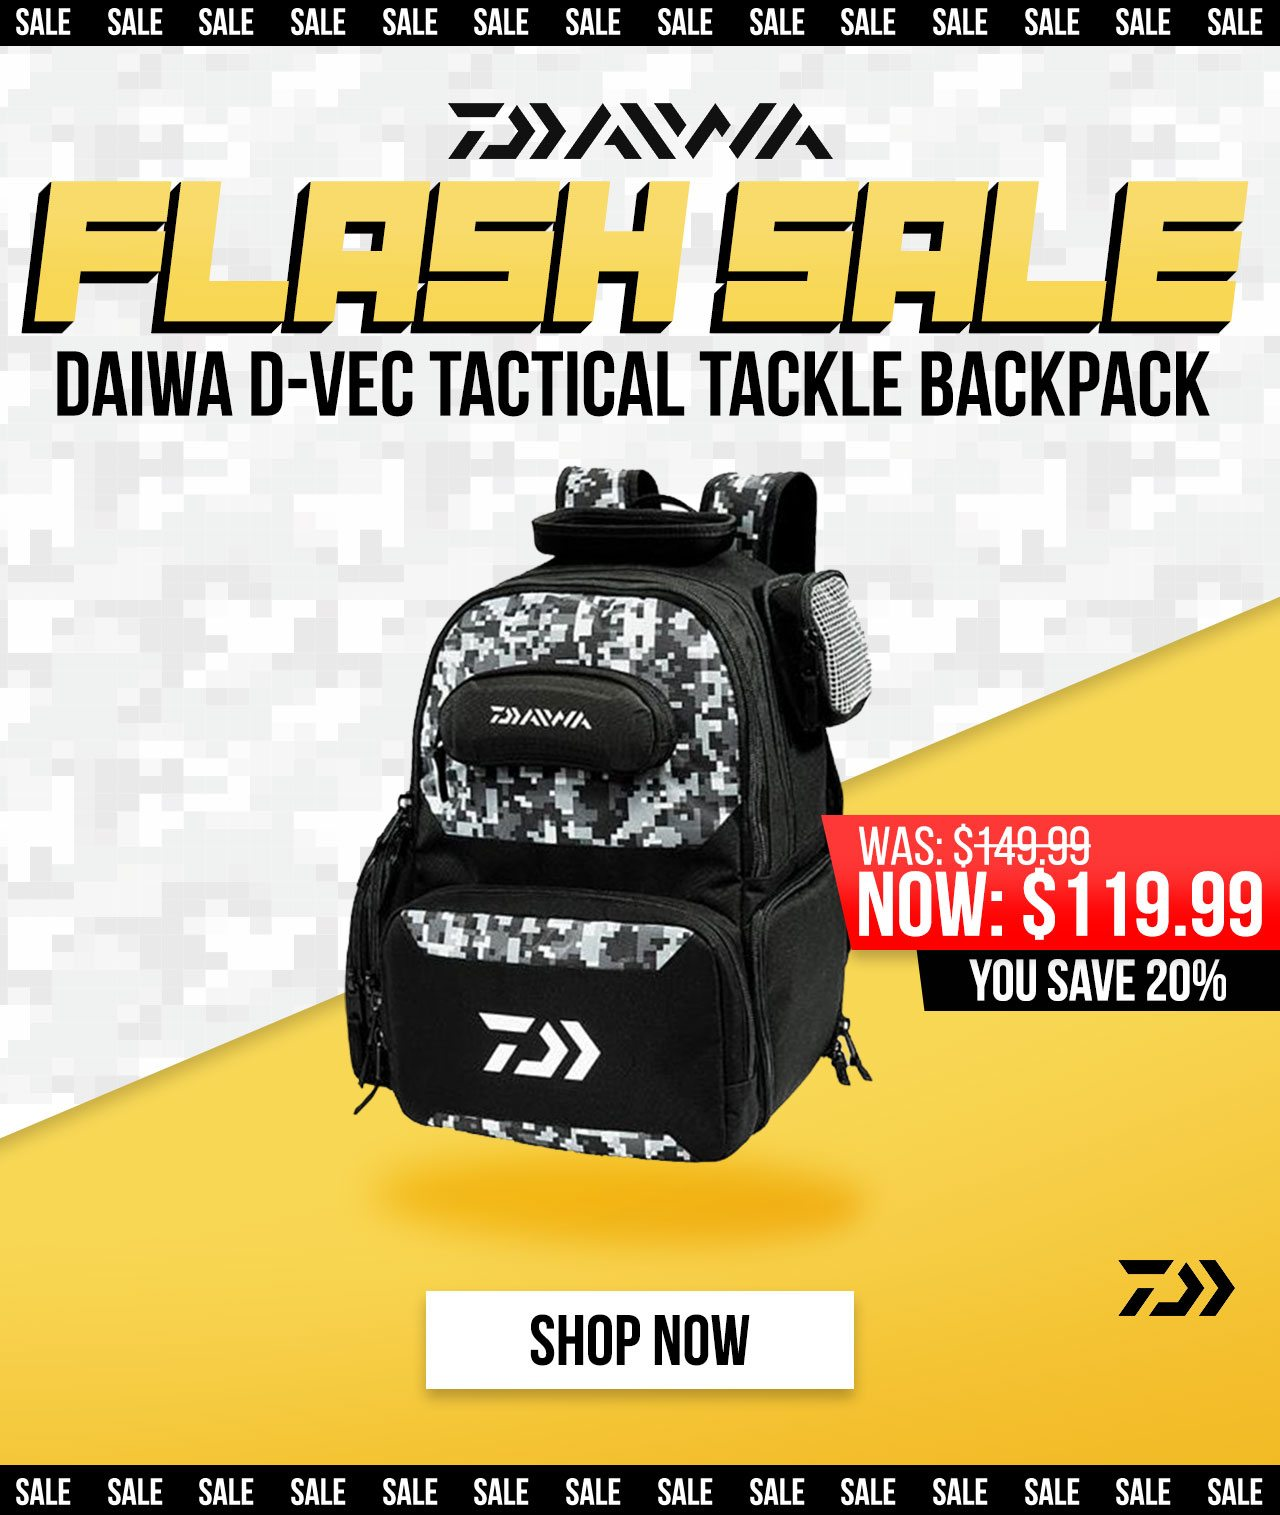 b4f7a79f3d4 Secure the Bag 🔥 20% OFF Daiwa D-Vec Tactical Backpack ...